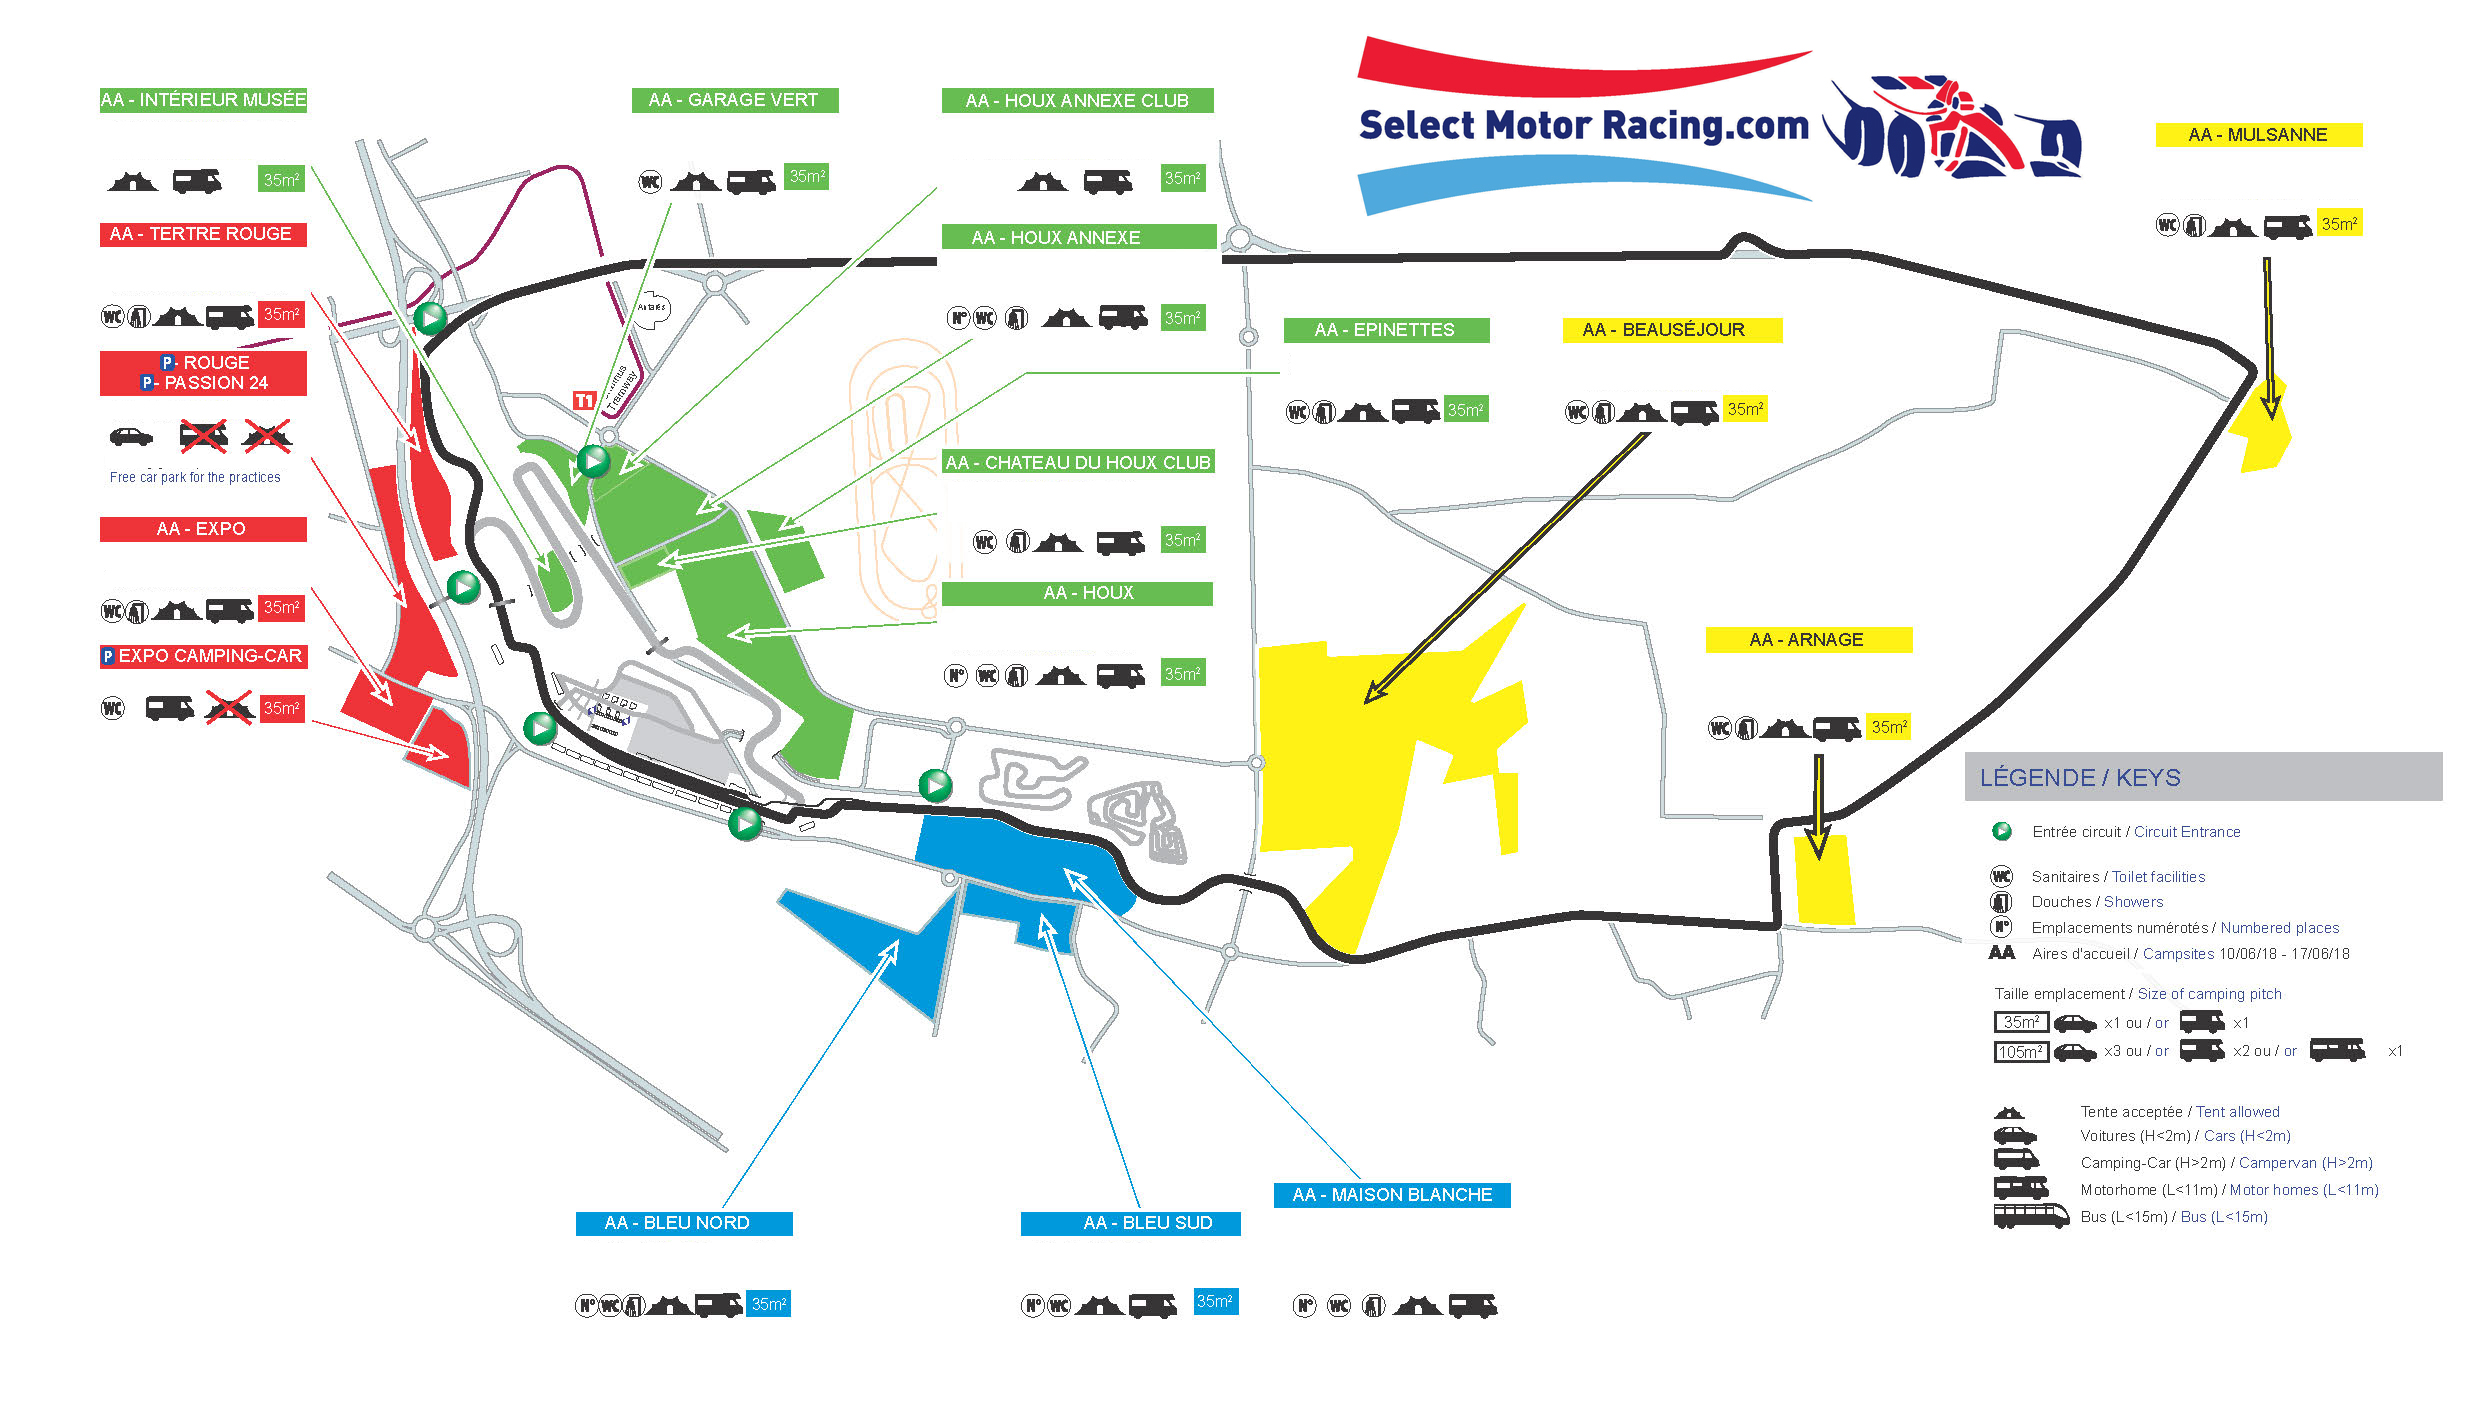 Le Mans Circuit Map 2020 Le Mans 24hr 13th & 14th June, Race Tickets, ACO Hospitality